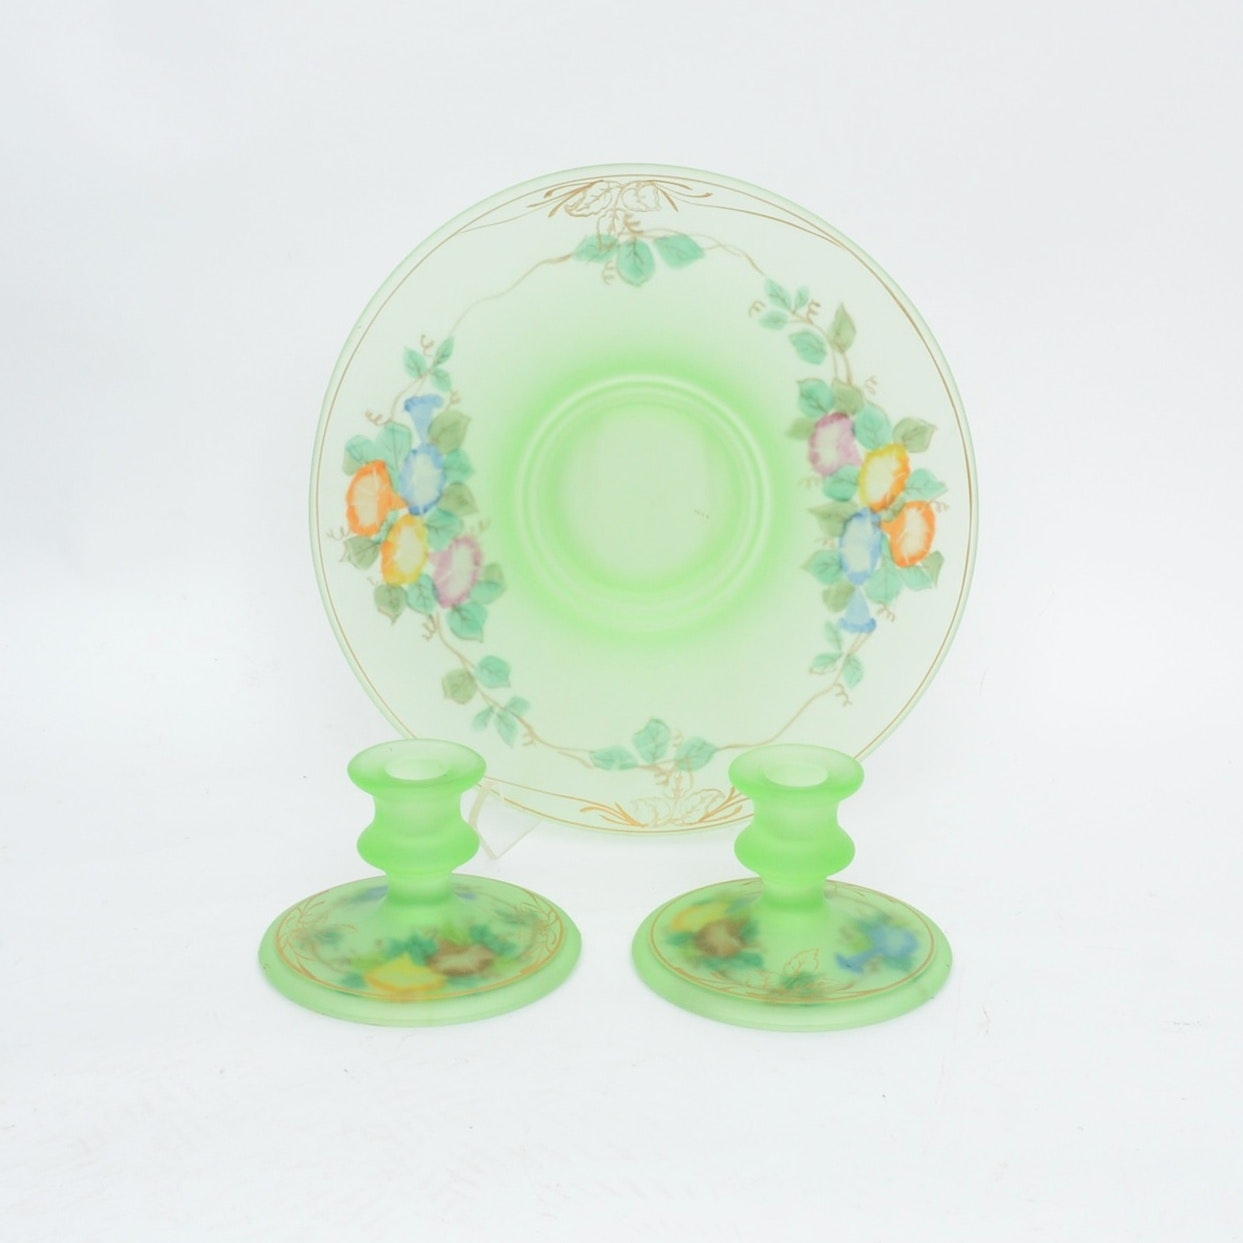 Hand Painted Satin Glass Pedestal Bowl and Candlesticks